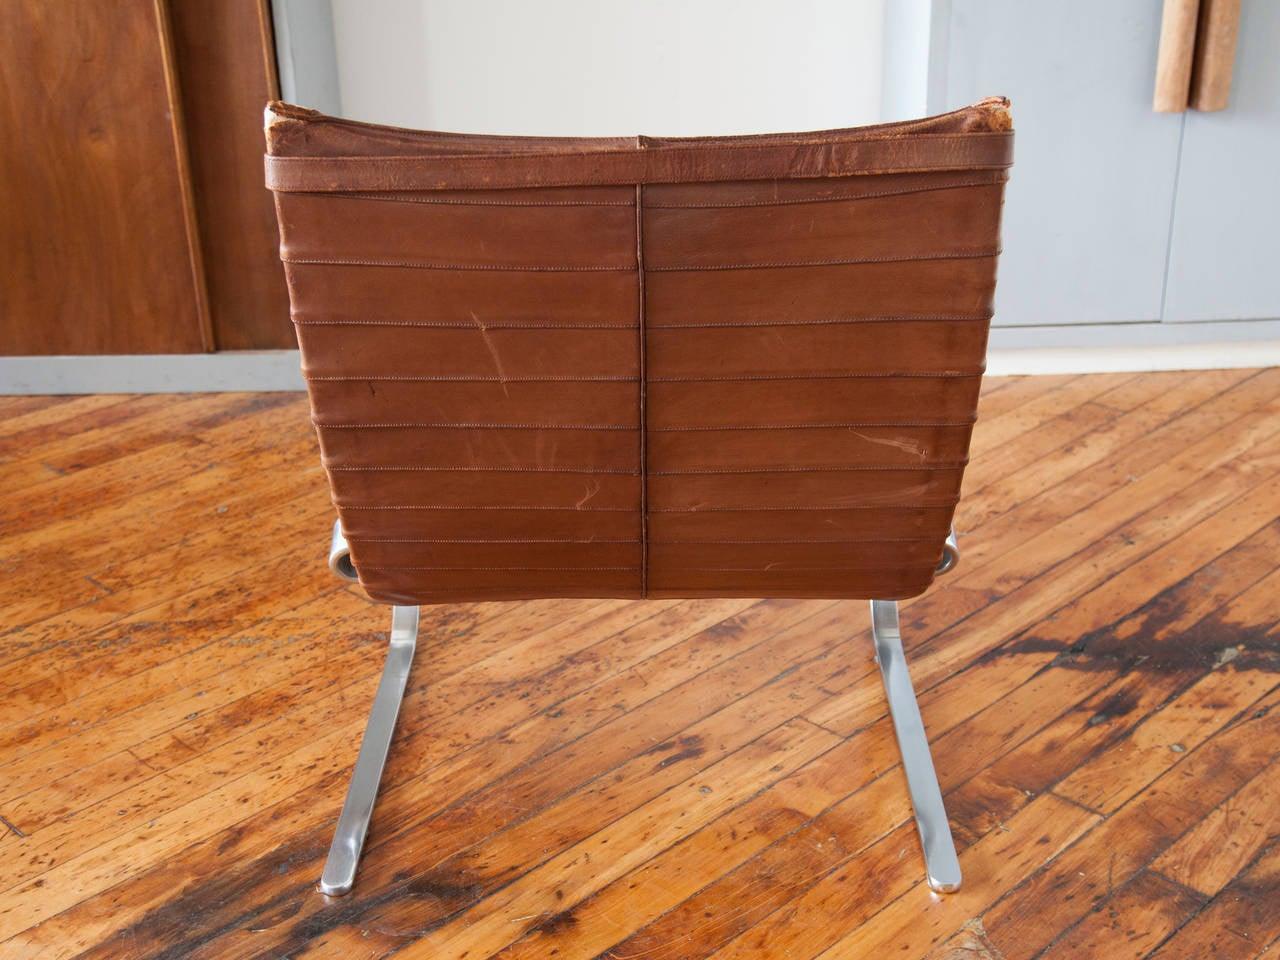 Leather and chrome-plated steel PK-20 chair by Poul Kjærholm, manufactured by E. Kold Christensen, Denmark. Unlike many of his Scandinavian contemporaries whose main focus was wood, Kjærholm was primarily interested in exploring steel for its